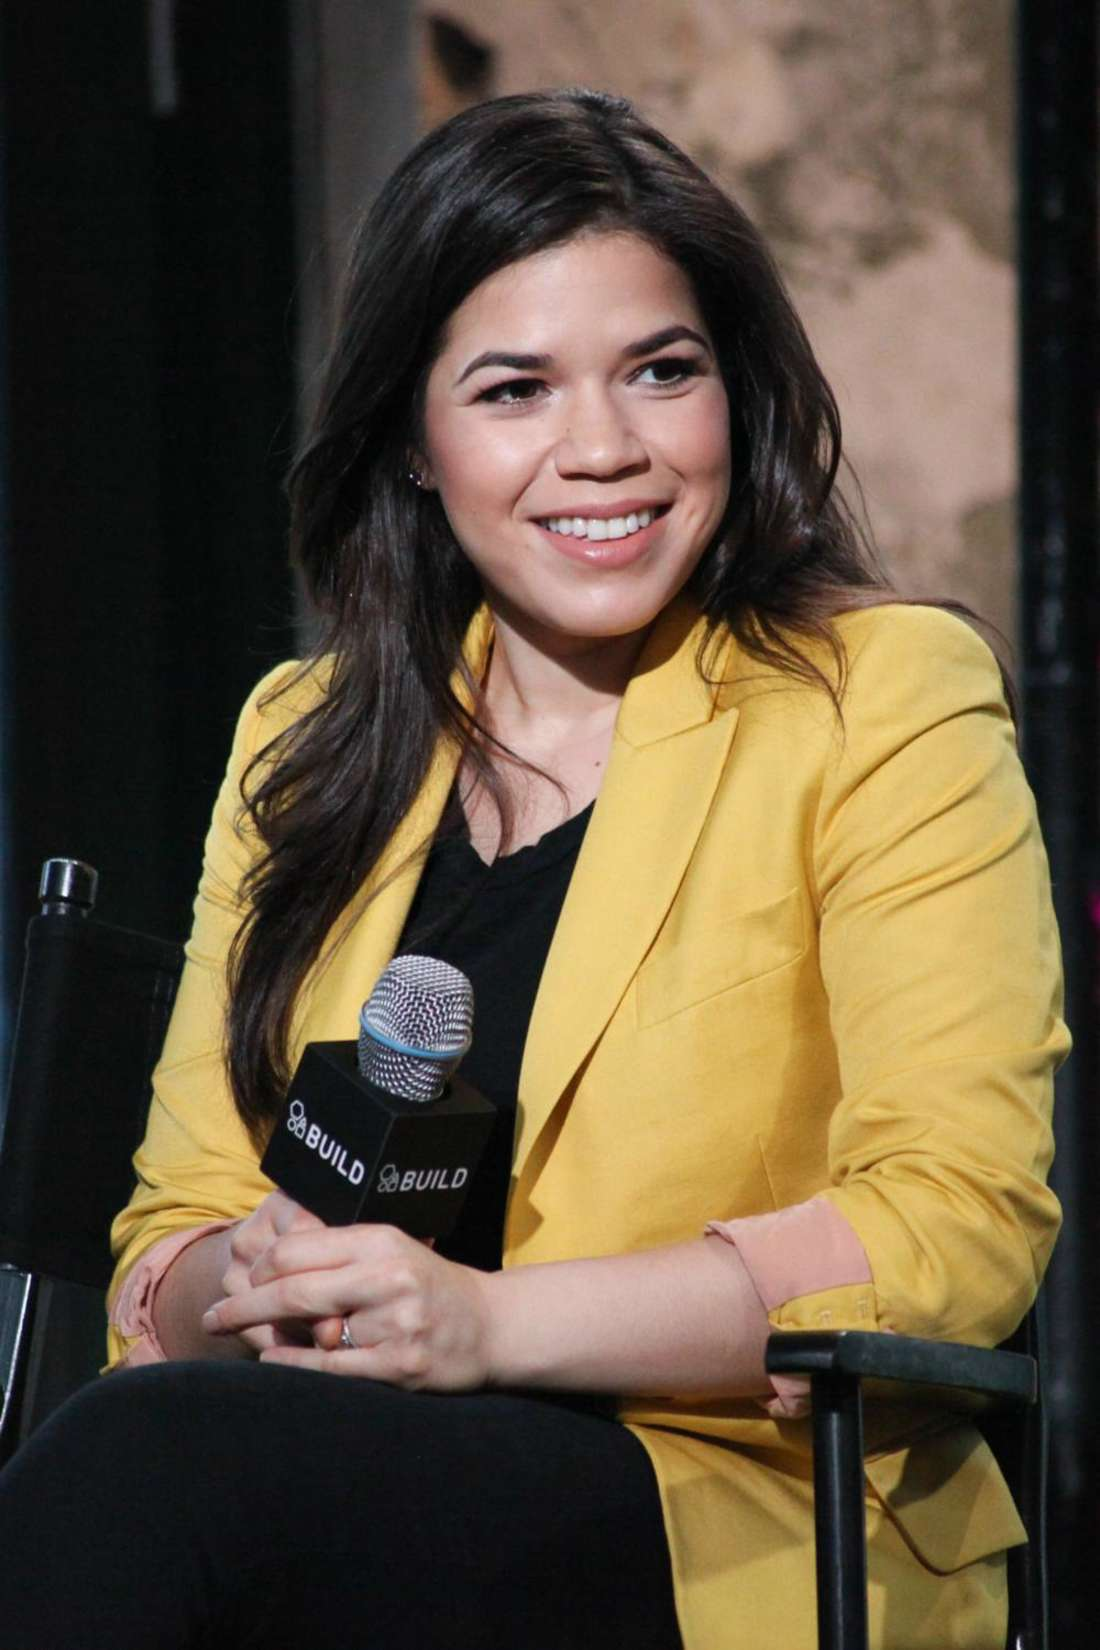 America Ferrera AOL Build Speaker Series Event in New York City